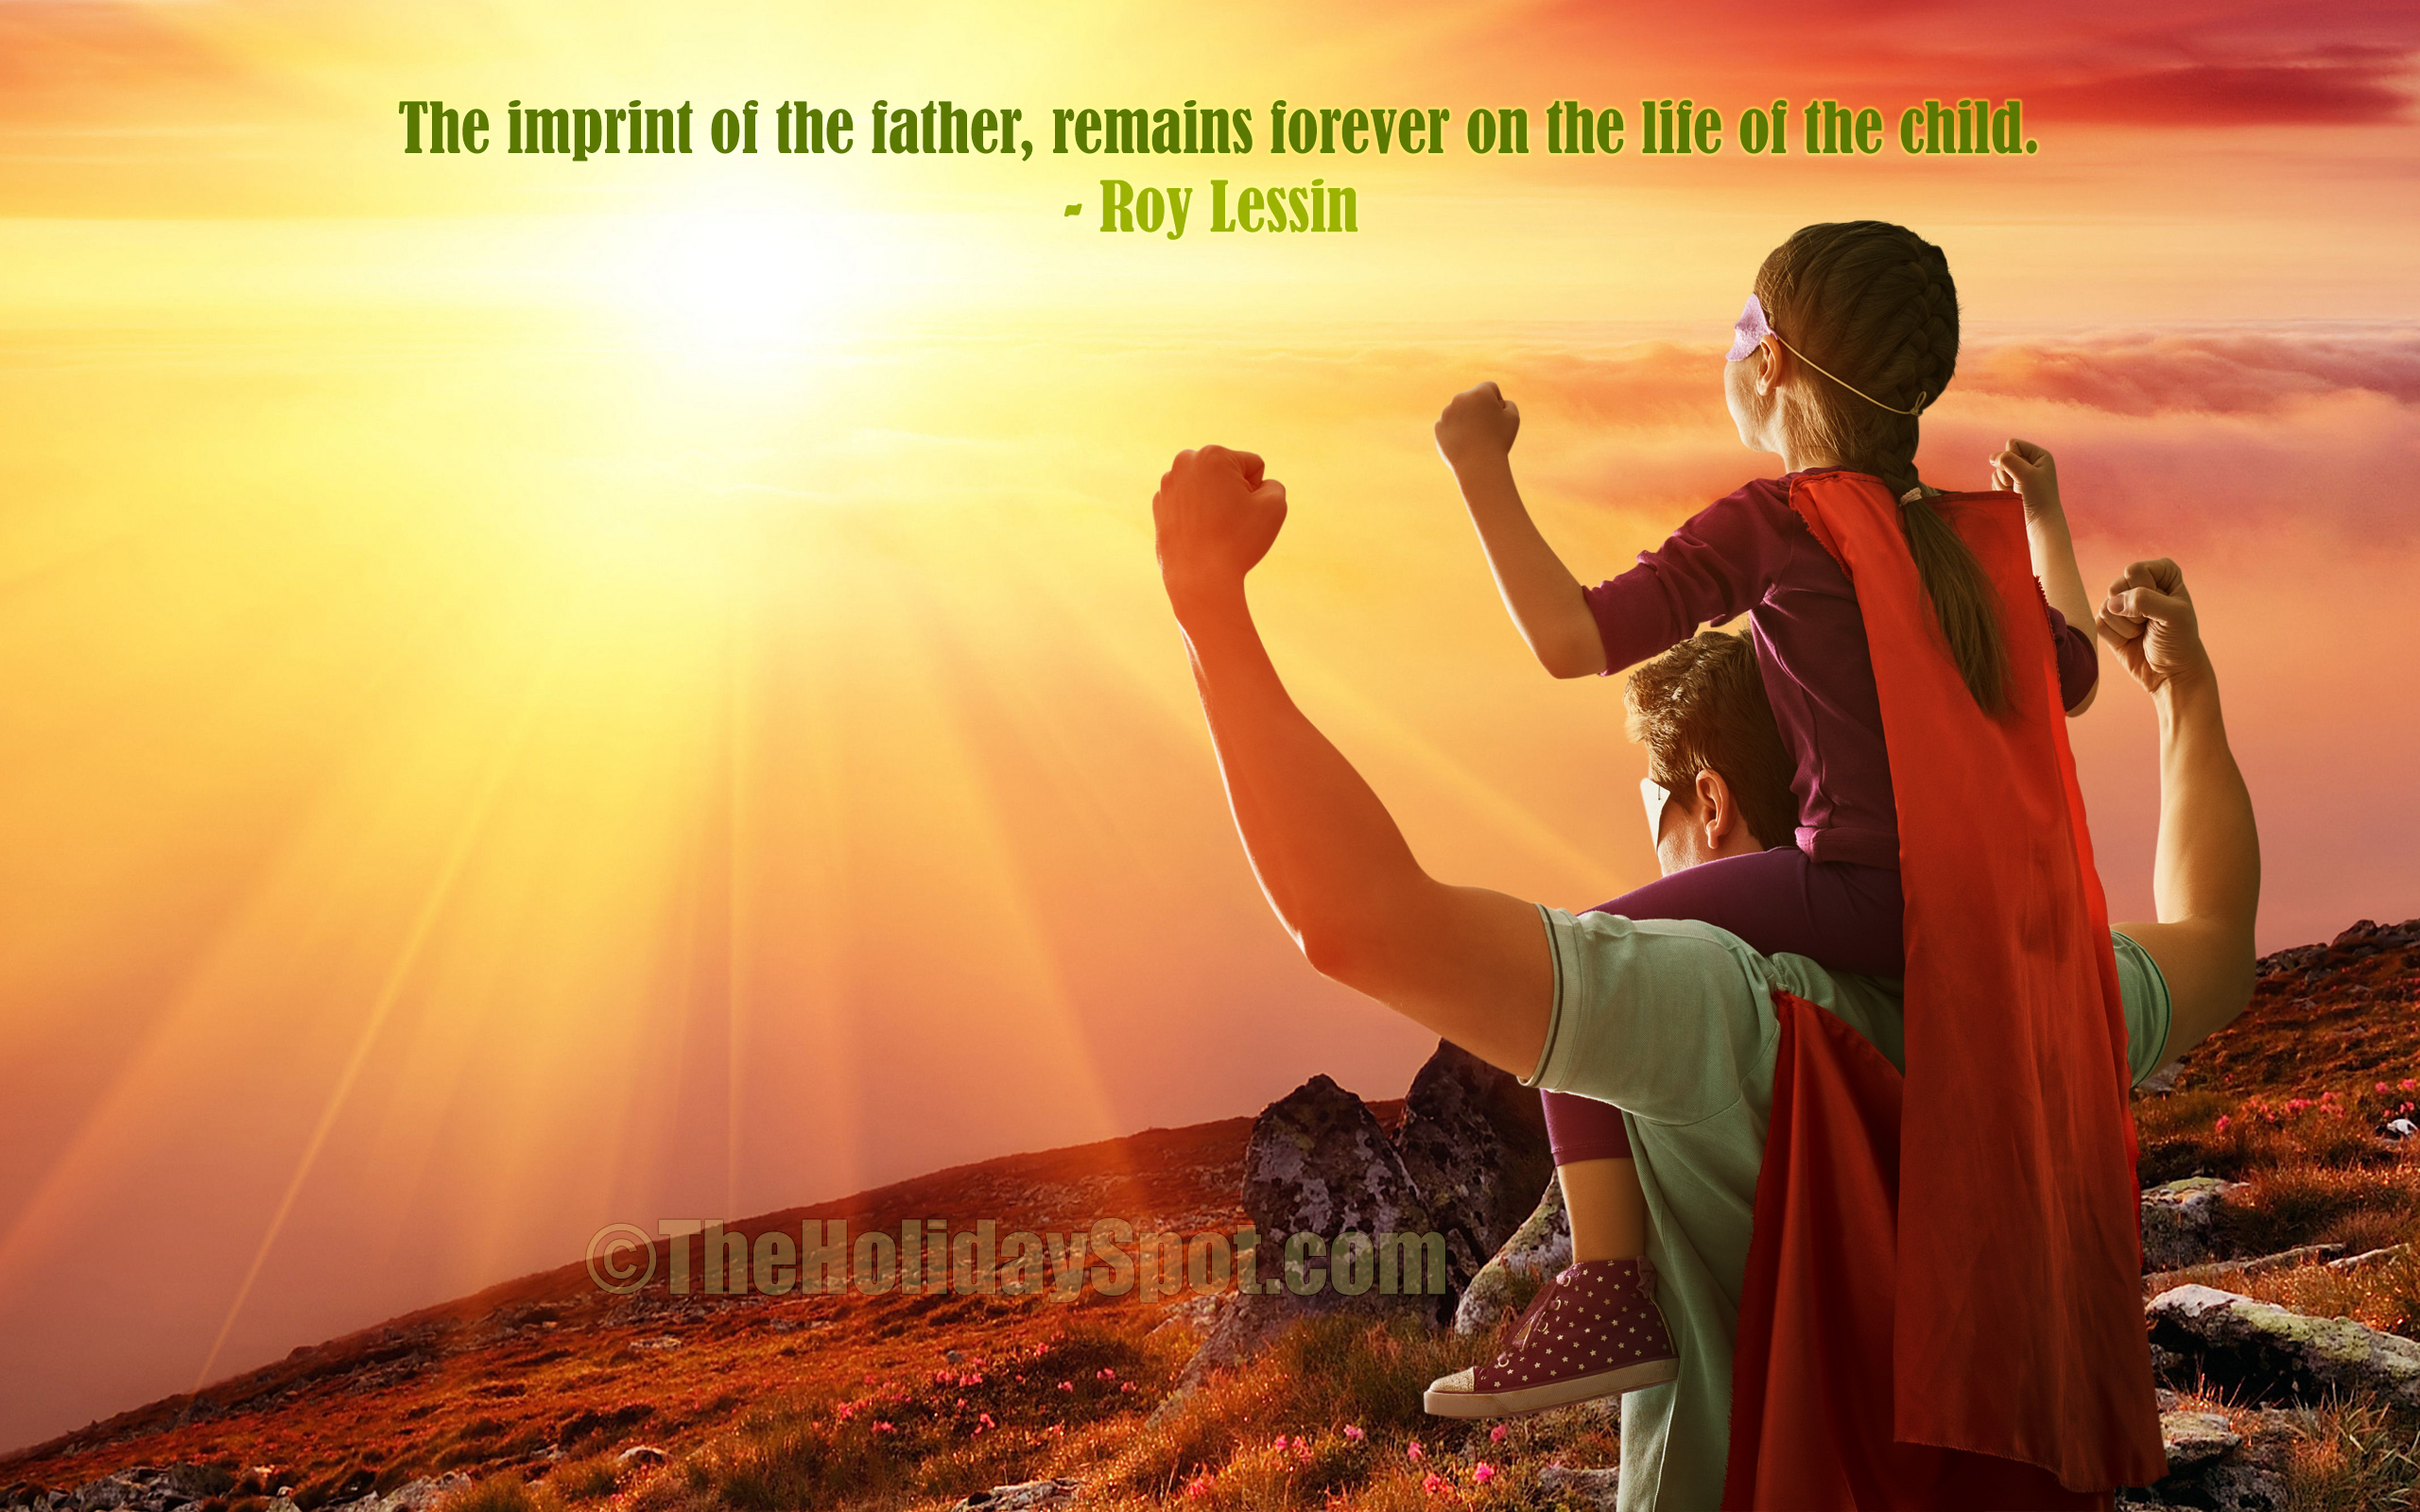 Give Thanks to the Father's Who Are There Every Day.